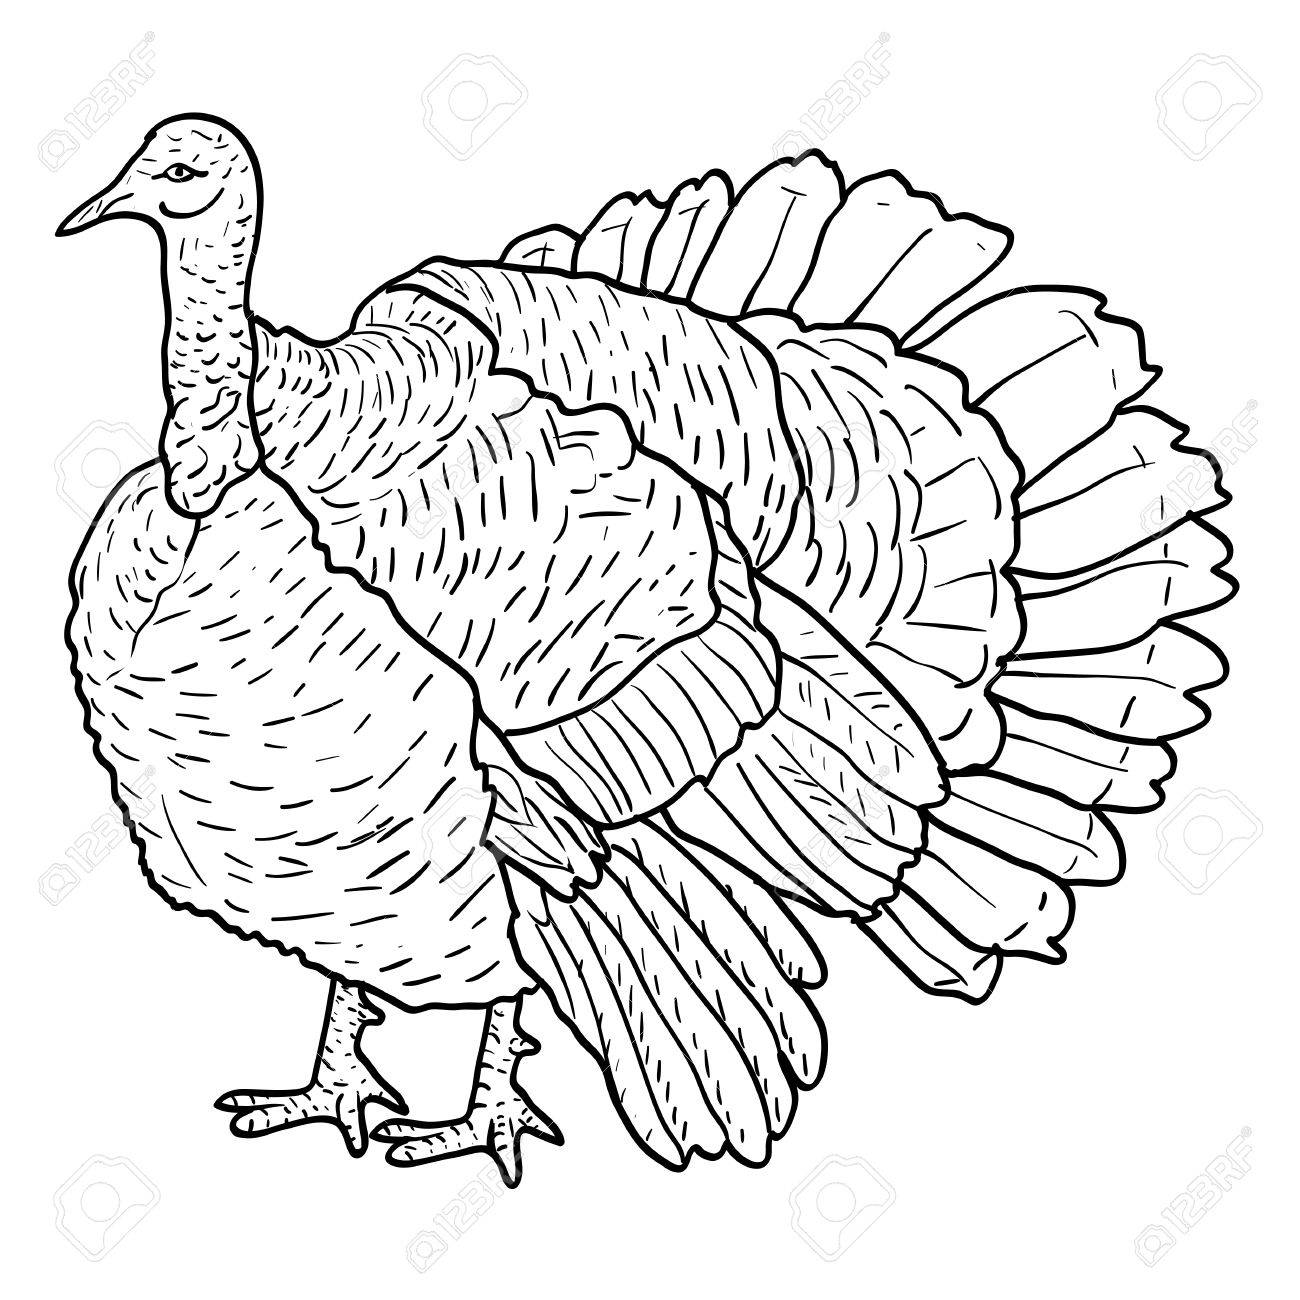 1300x1300 Sketch Black Turkey On A White Background. Vector Illustration